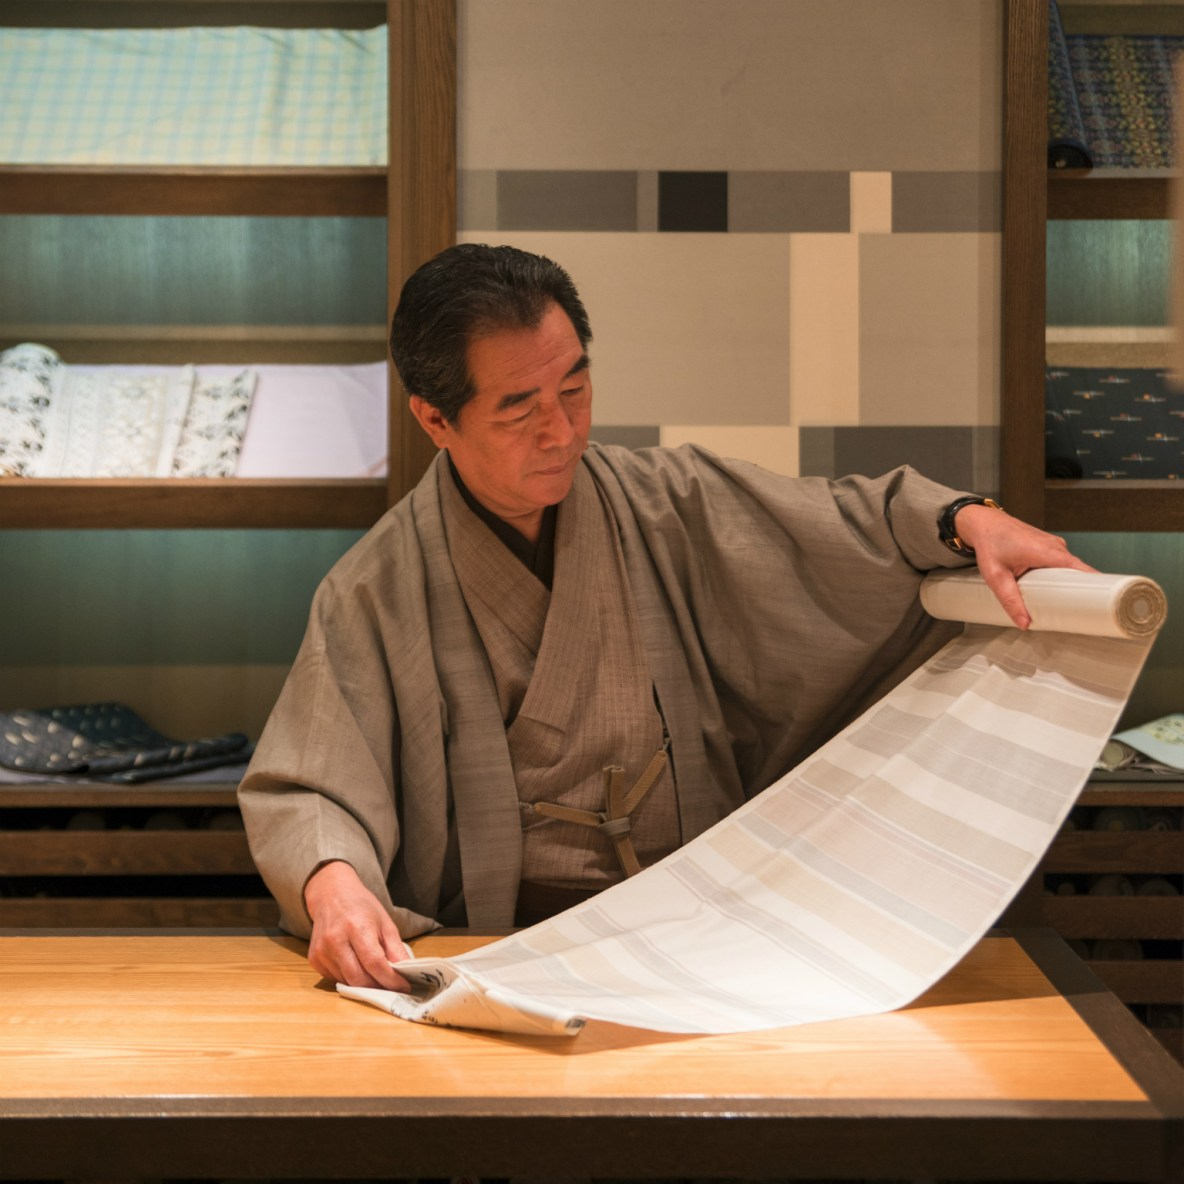 Kimono craftsmanship preserved by a gentleman of both poise and posture